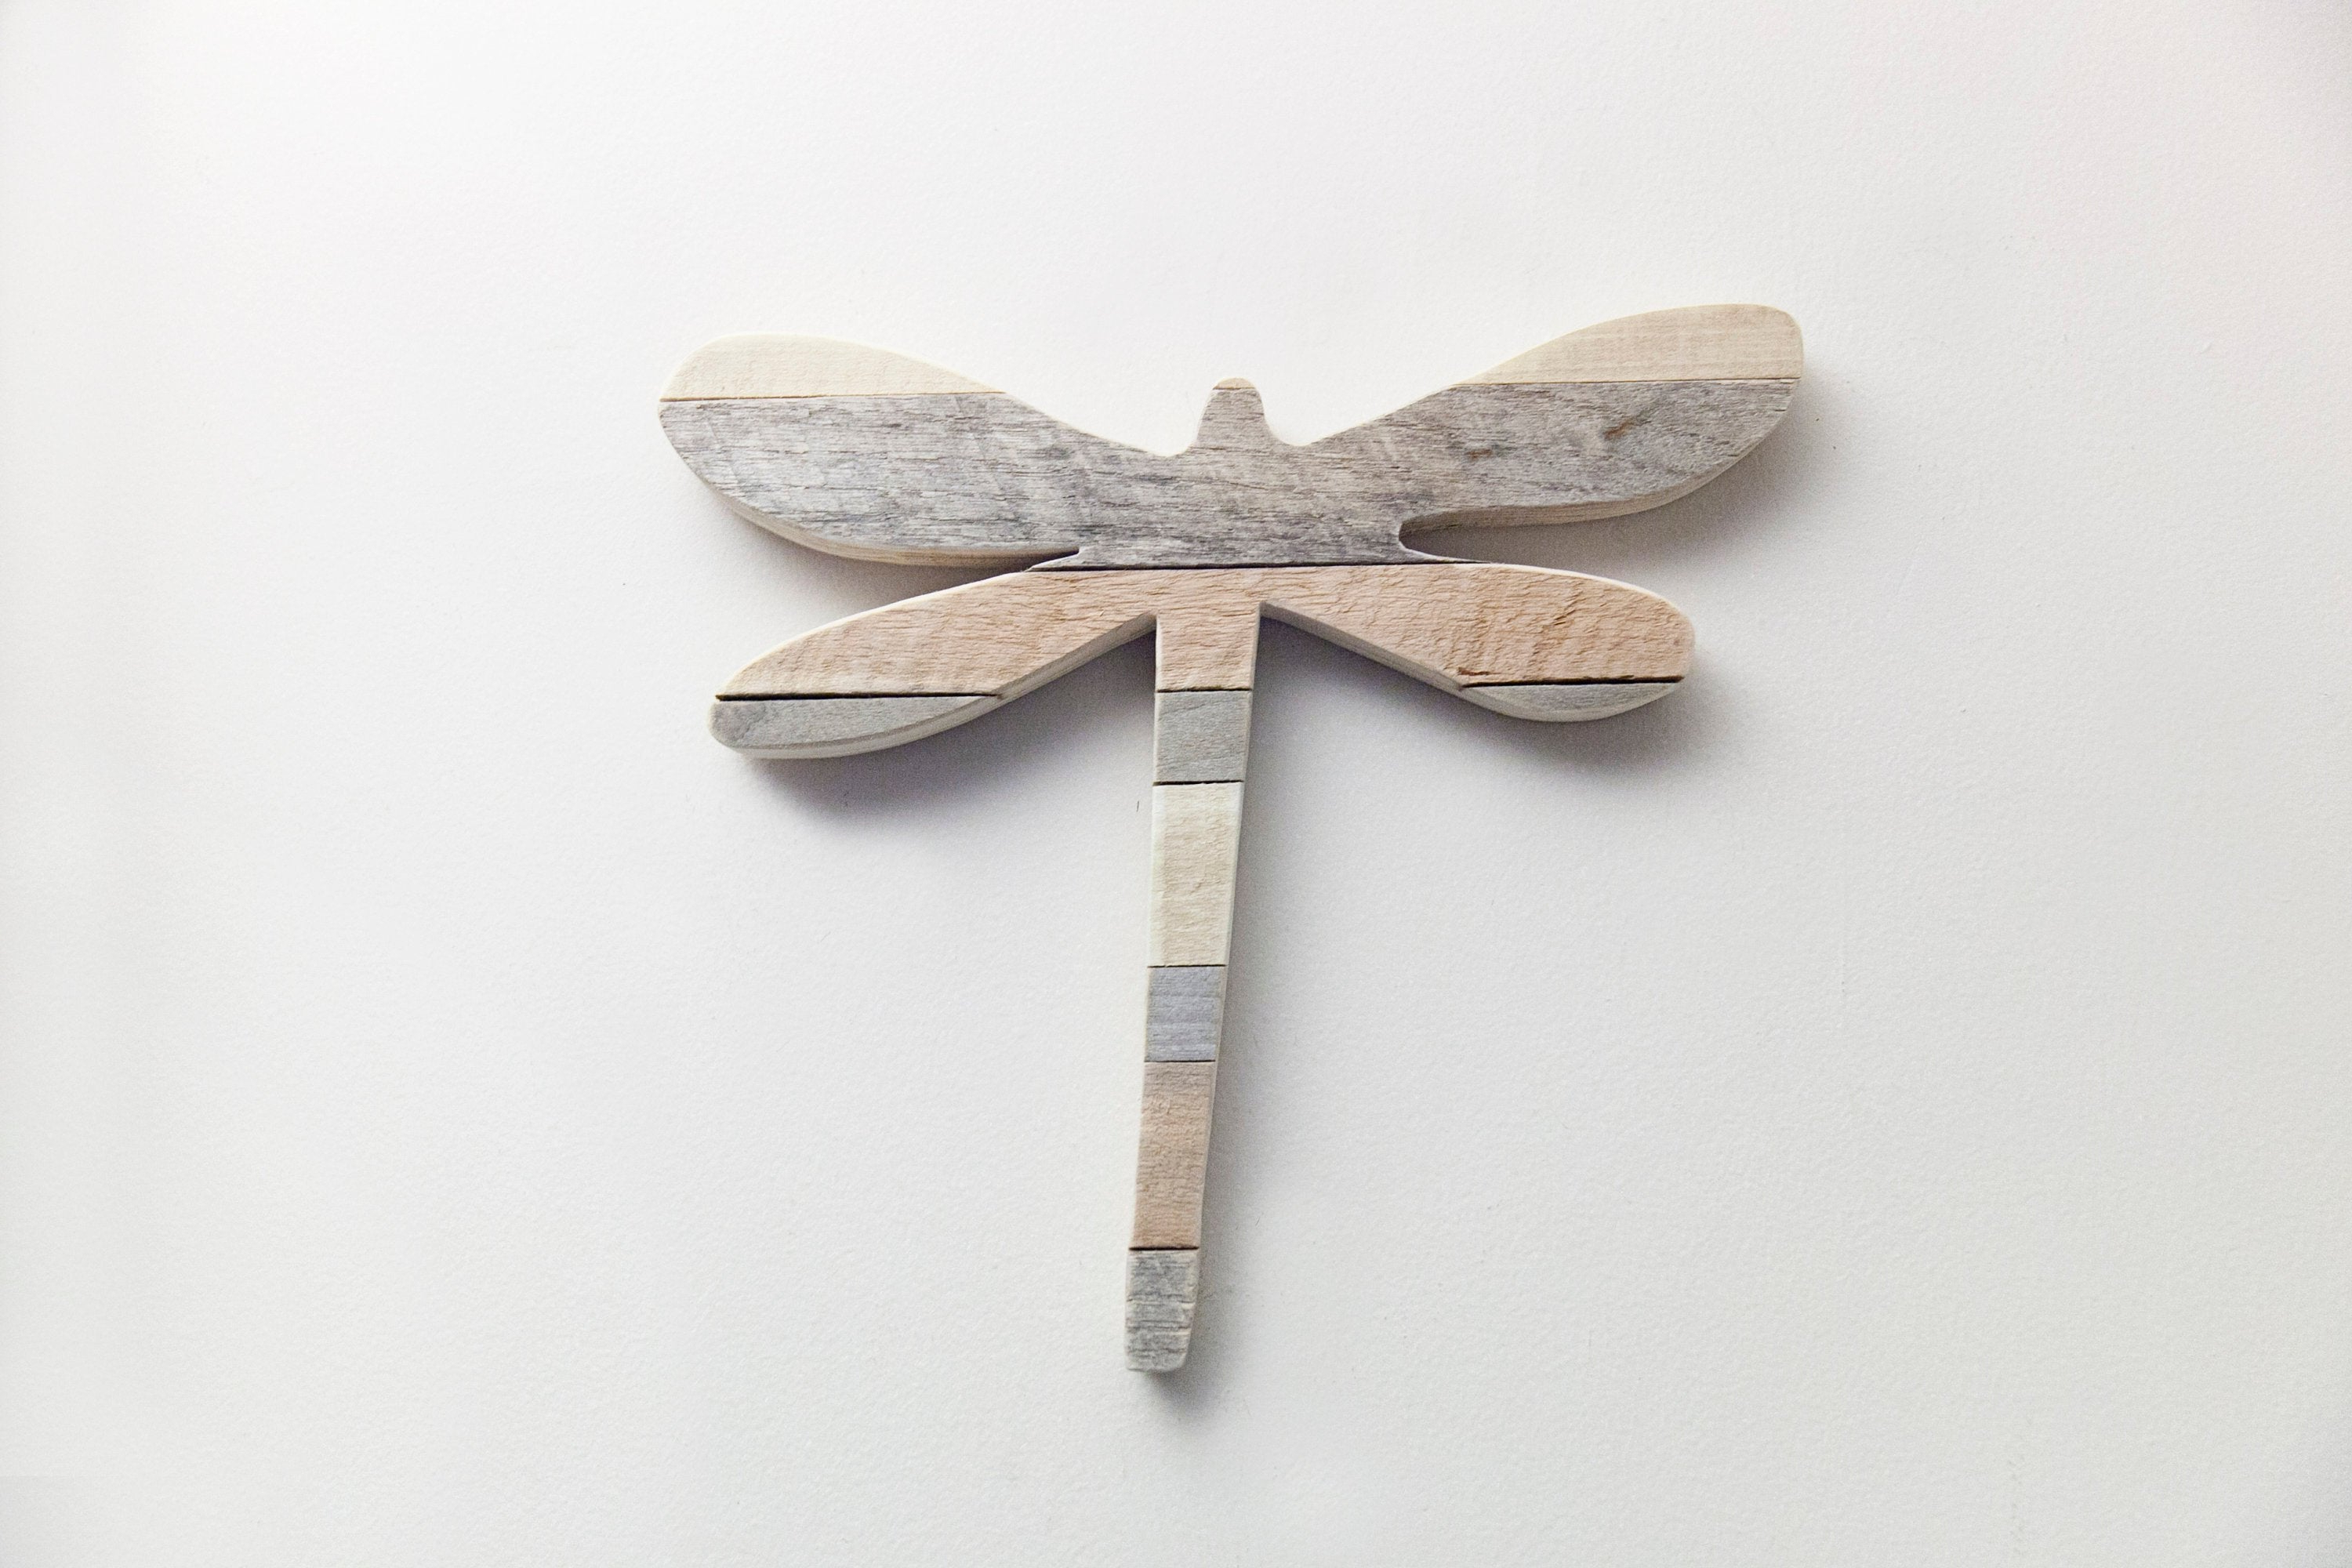 Etsy Intended For Famous Dragonfly Wall Decor (View 16 of 20)